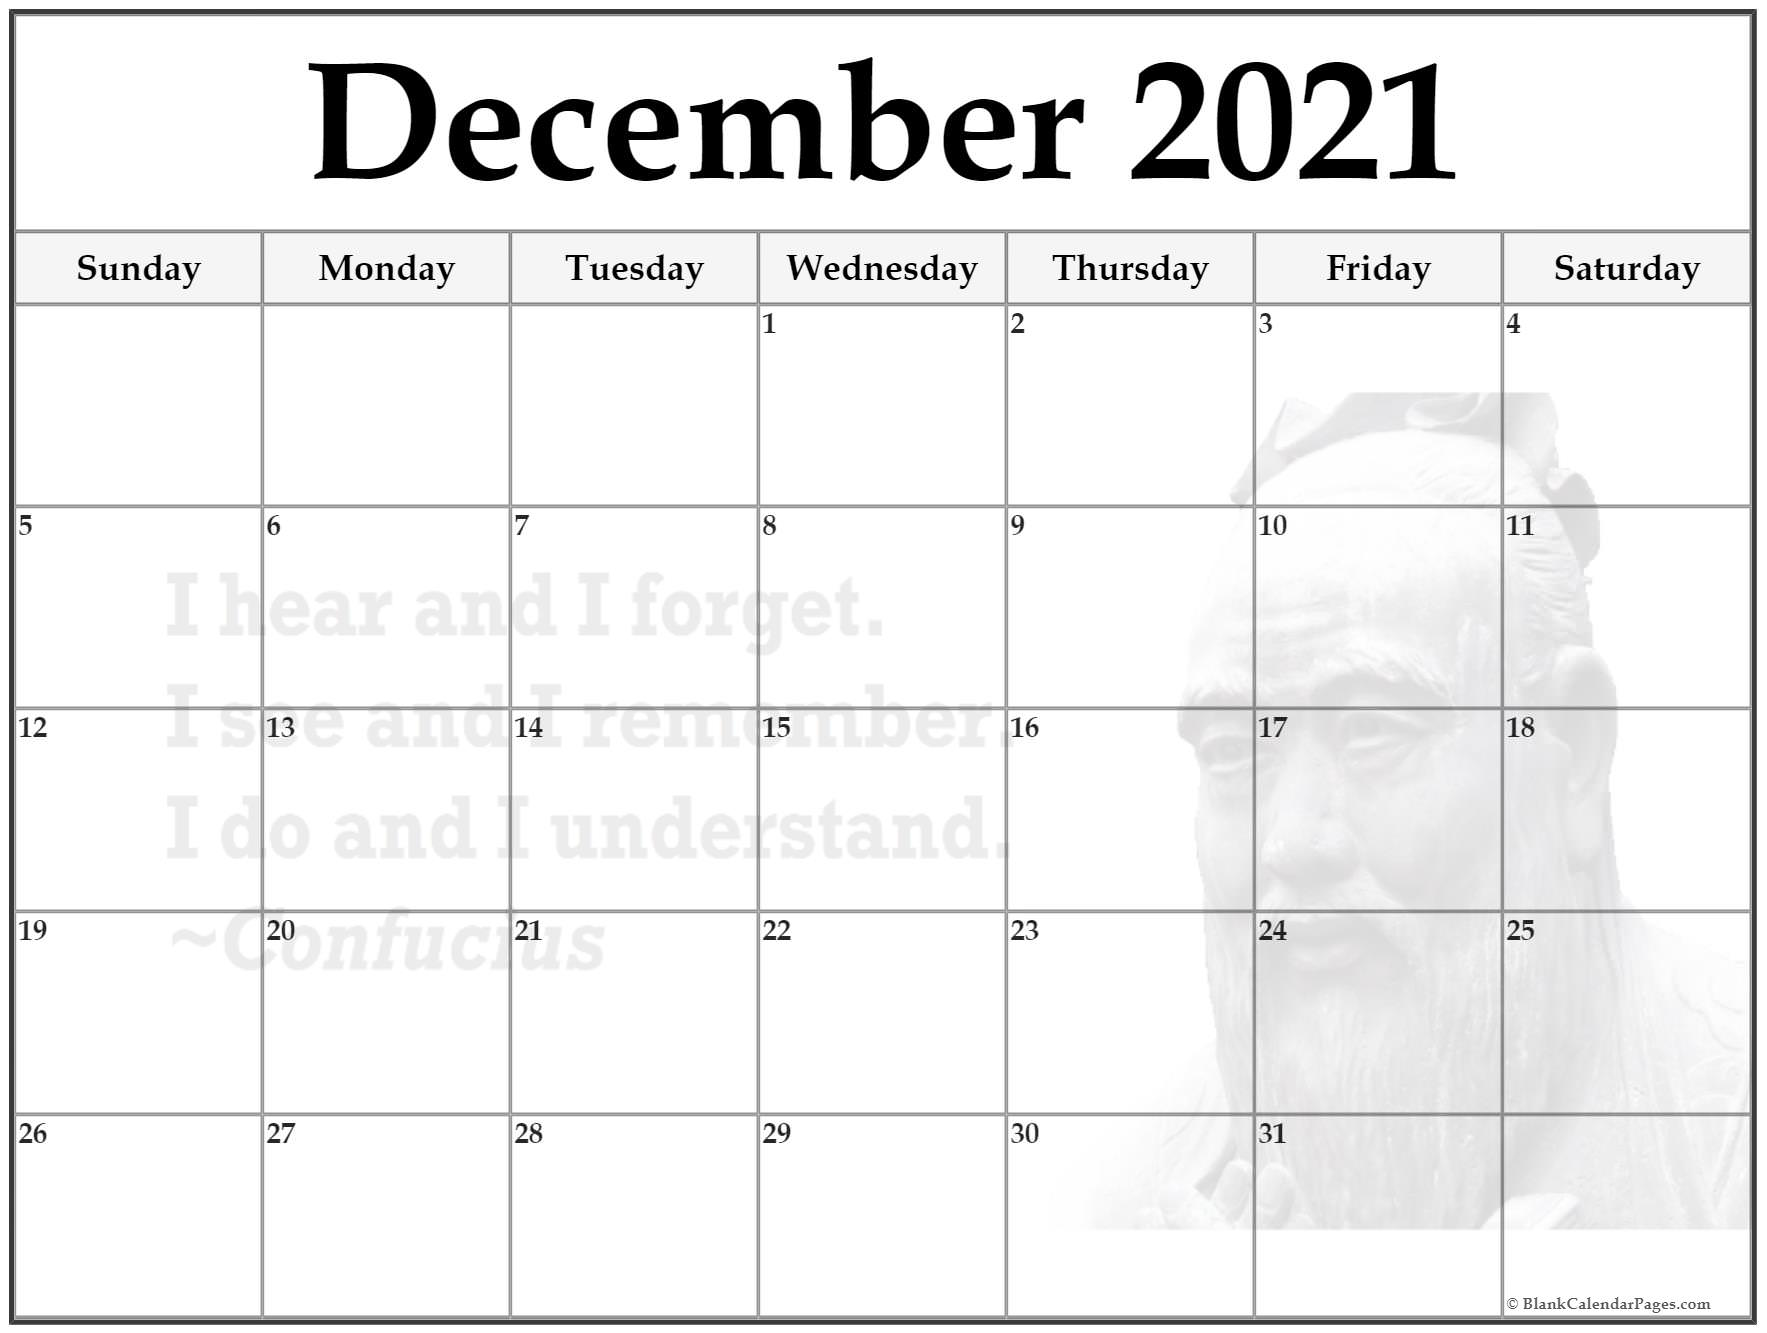 December 2019 monthly calendar template. I hear and I forget.I see and I remember.I do and I understand.~Confucius